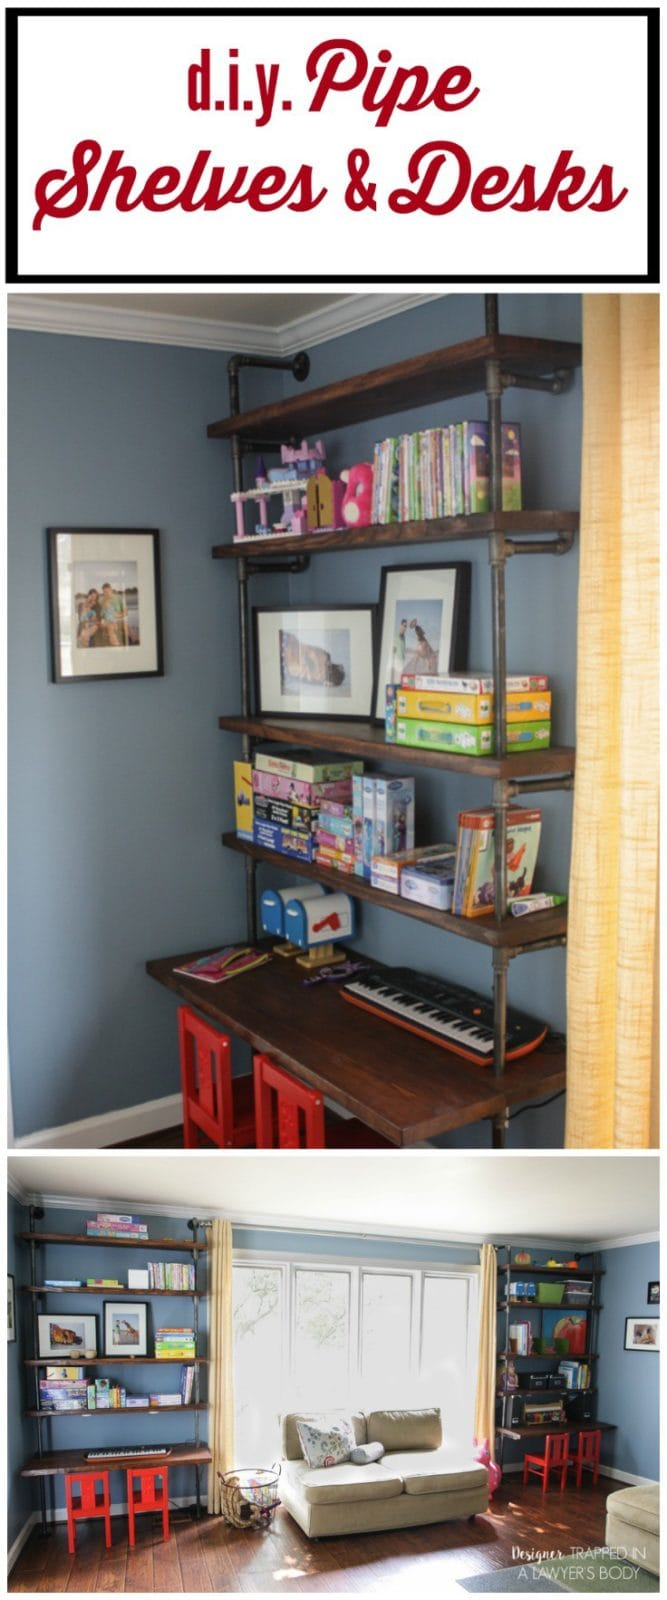 Make Your Own Diy Pipe Shelves And Built In Desks Using This Detailed Tutorial Complete With Exactly What Ings You Need